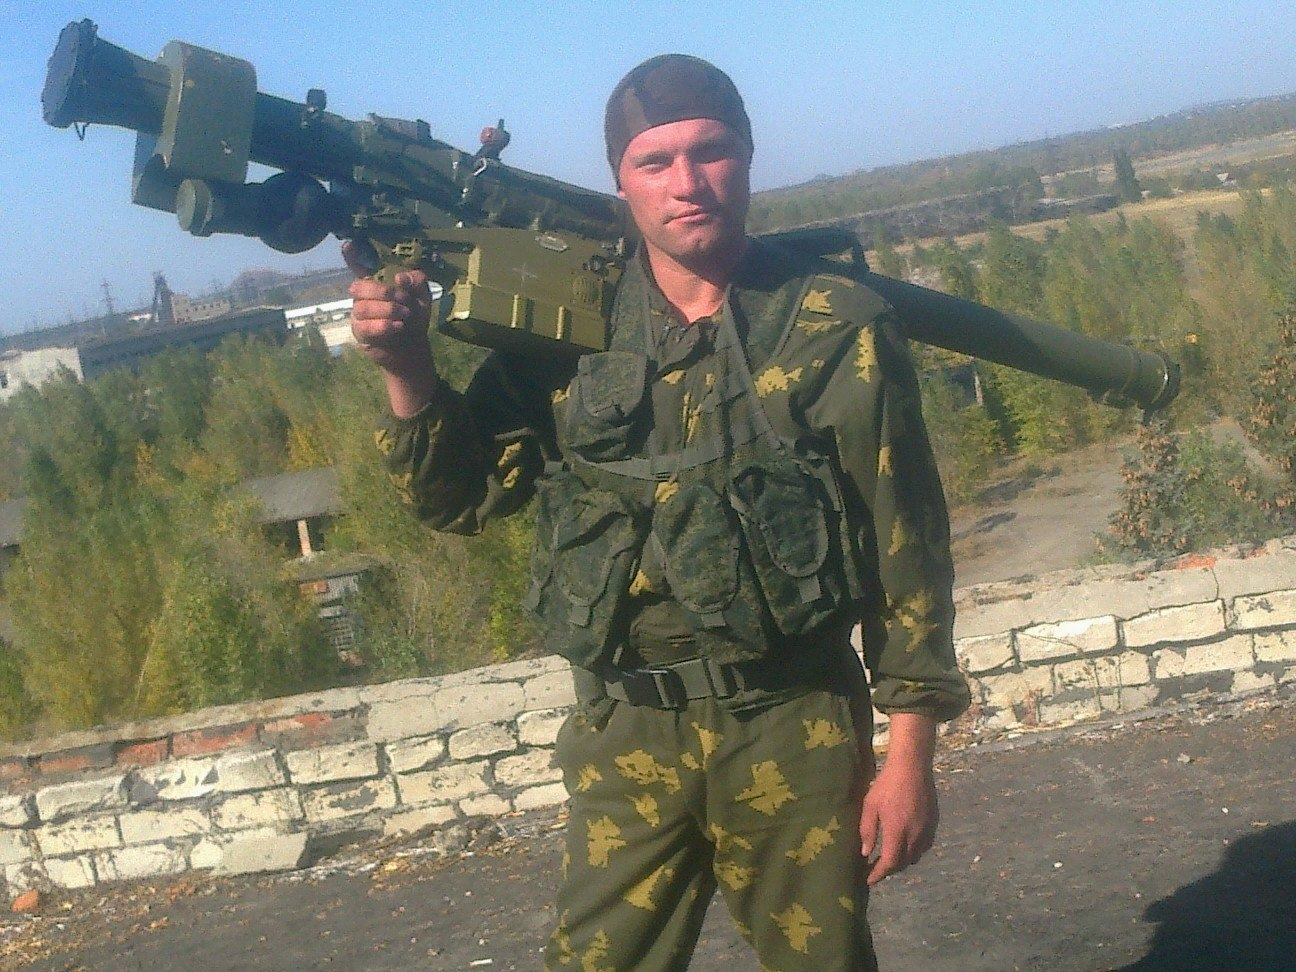 Sergey Polkanov, Russian soldier with Igla-S (SA-24) SAM near Donetsk in Ukraine.